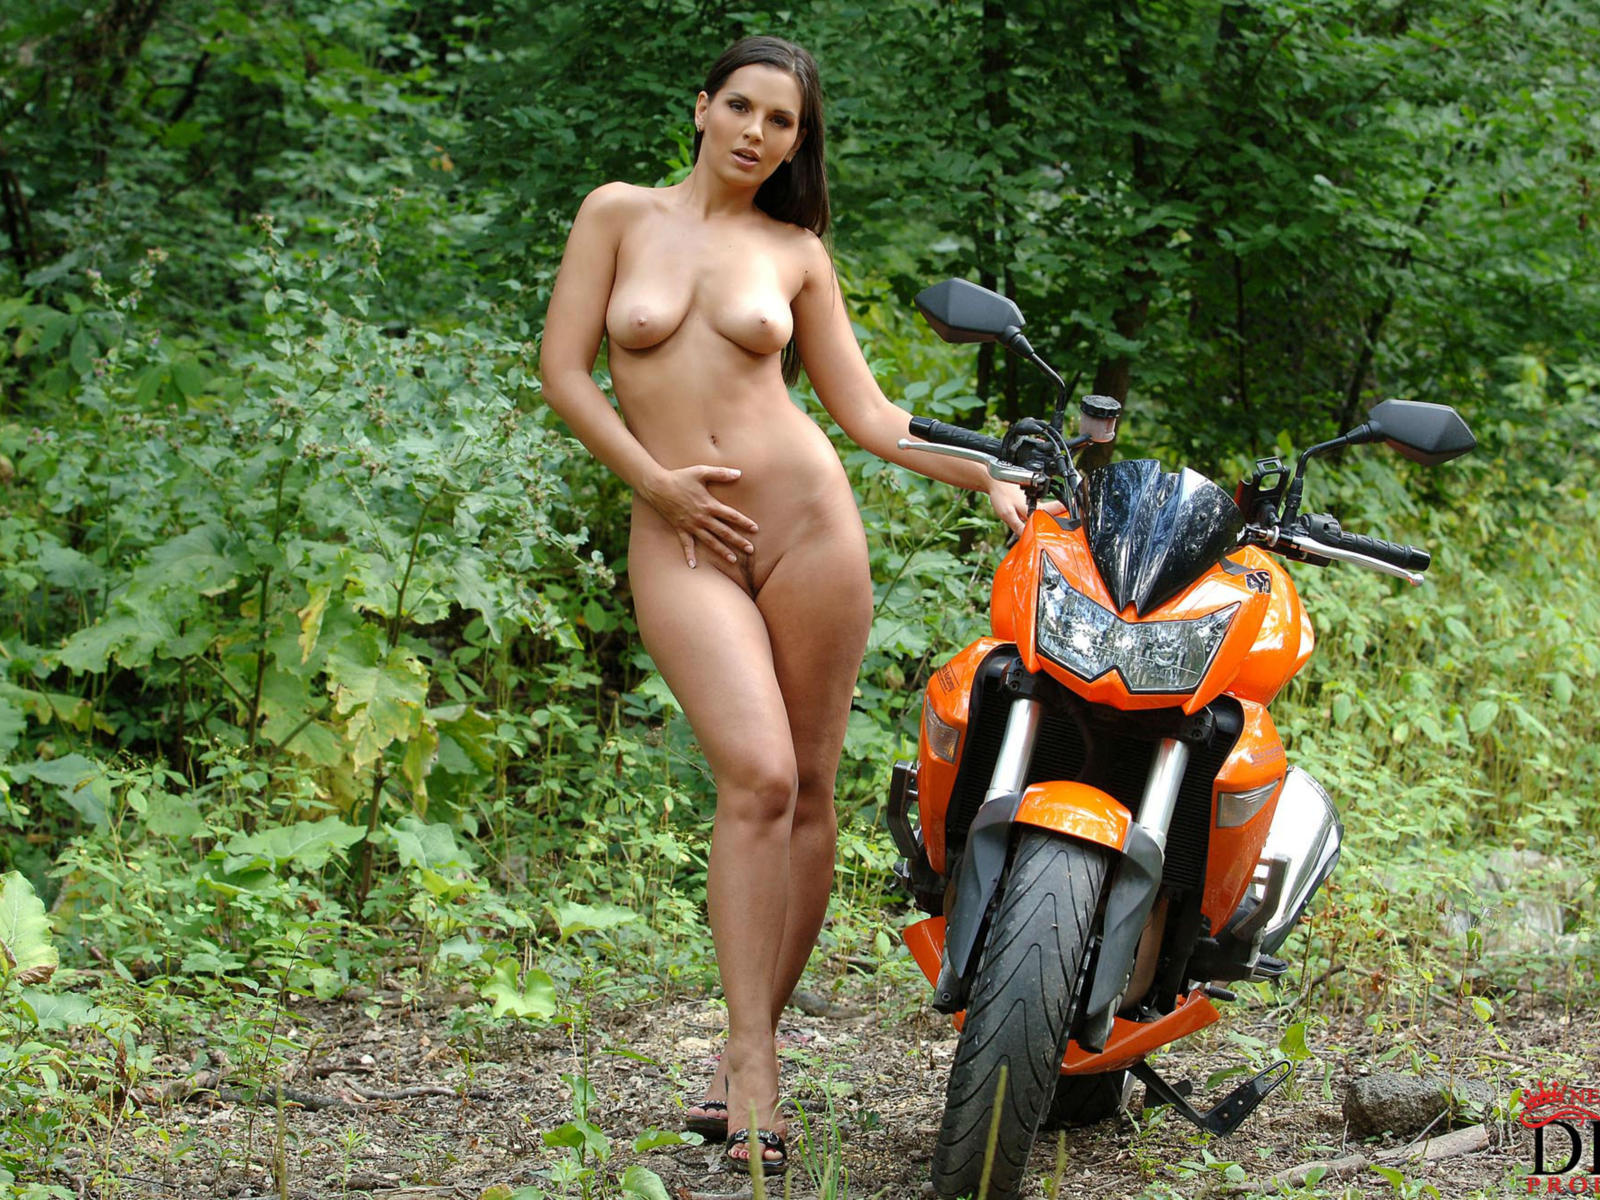 Free nude women on motorcycles